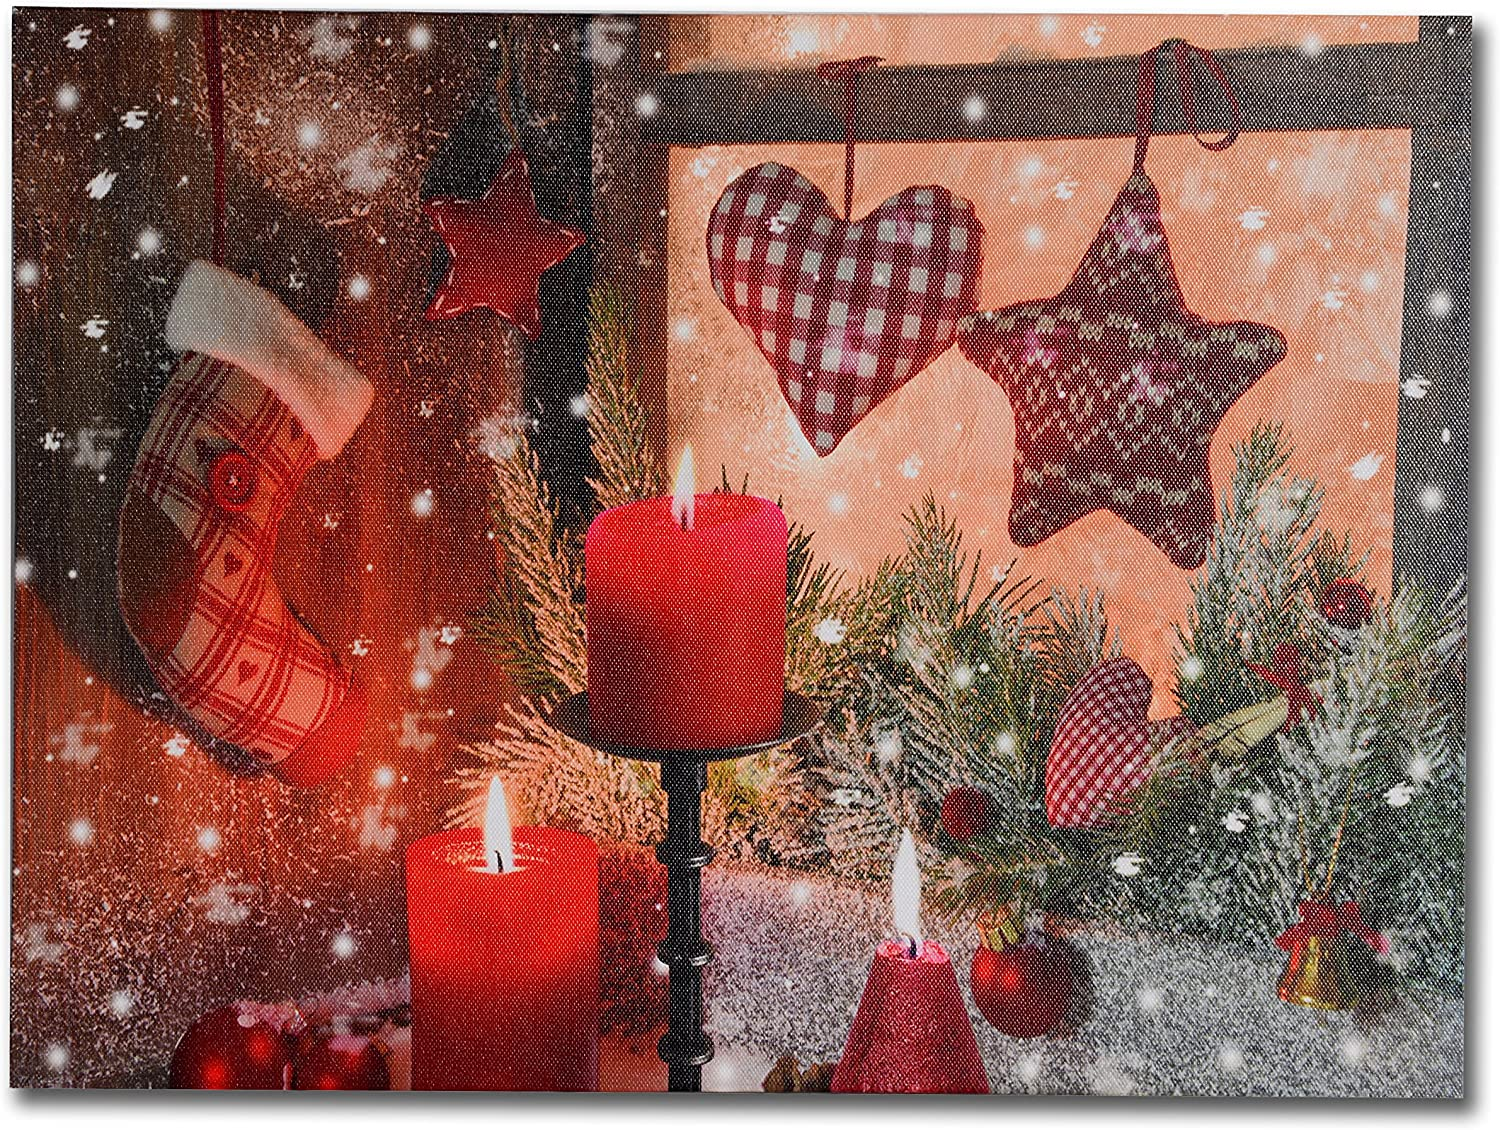 RED HEART TREE CANVAS PRINT PICTURE WALL ART FREE FAST POSTAGE VARIETY OF SIZES